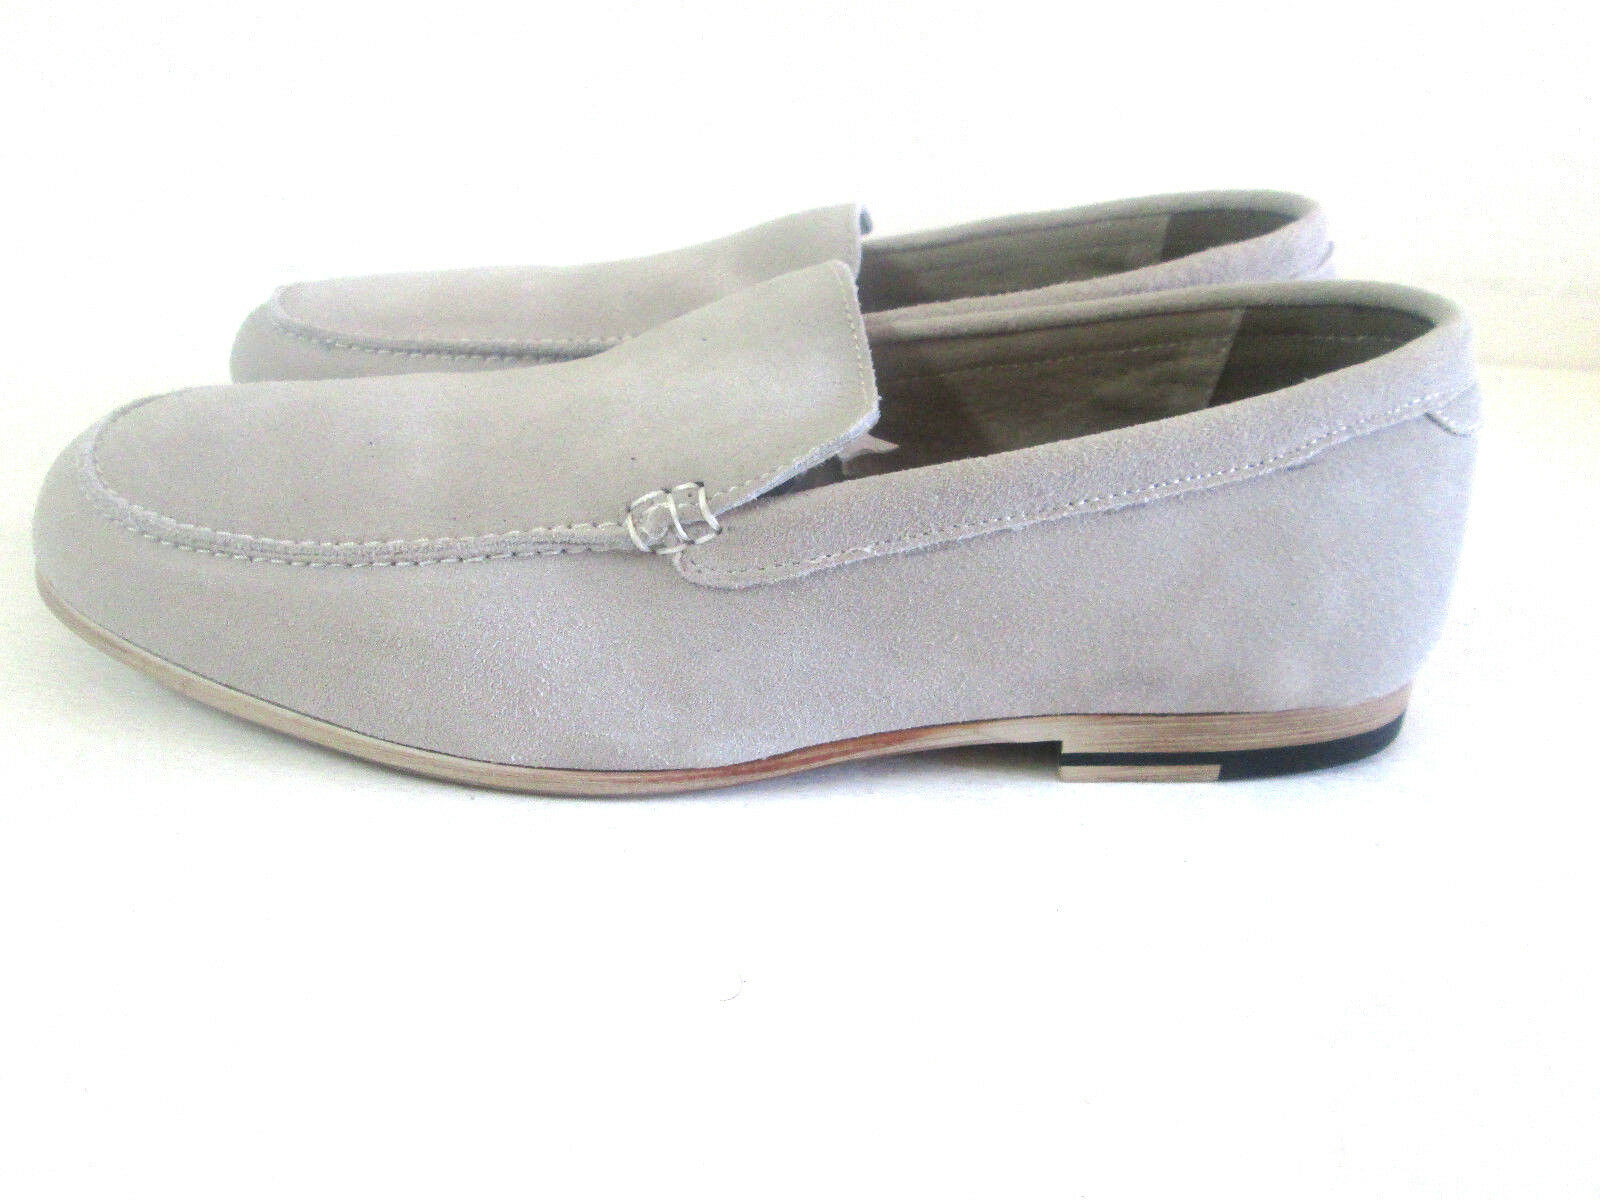 Scandro MenSand colorAll Soft LEATHER SUEDESlip-Onshoes Moccasin Loafer 5810